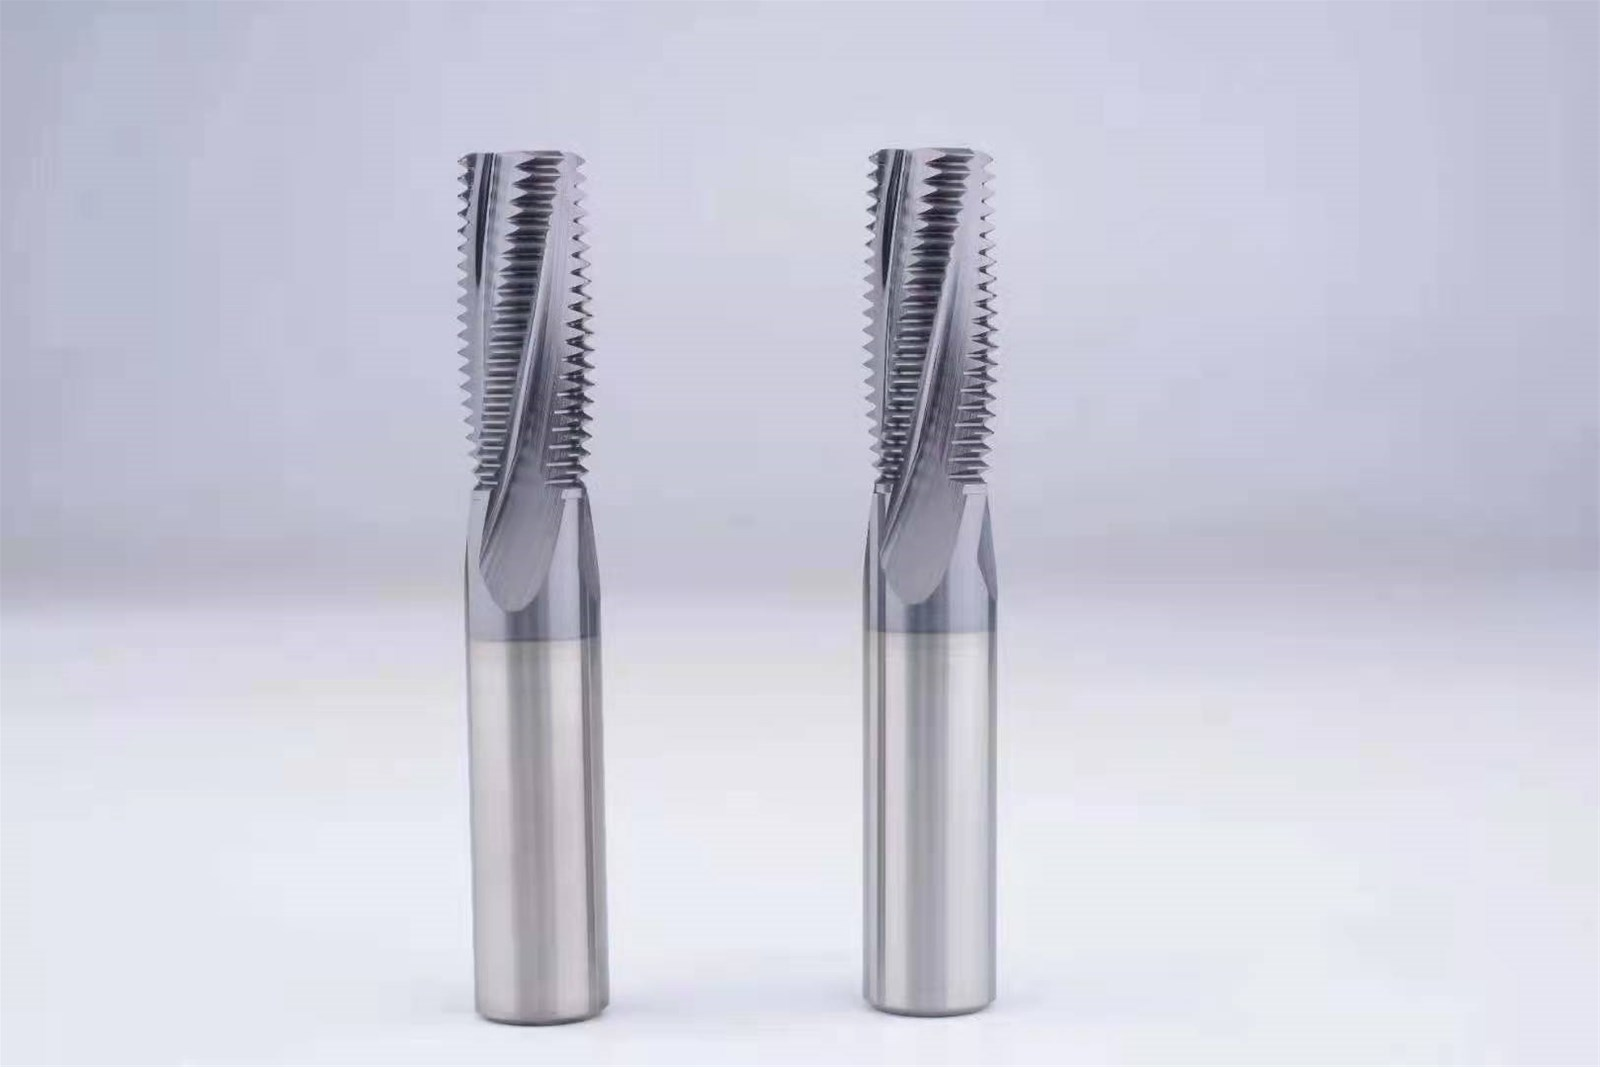 Carbide Thread End Mills 4F-M3 M4 M5 M6 M8 M10 M12 M14 Thread Mills, Milling Cutter with TIALN Coat